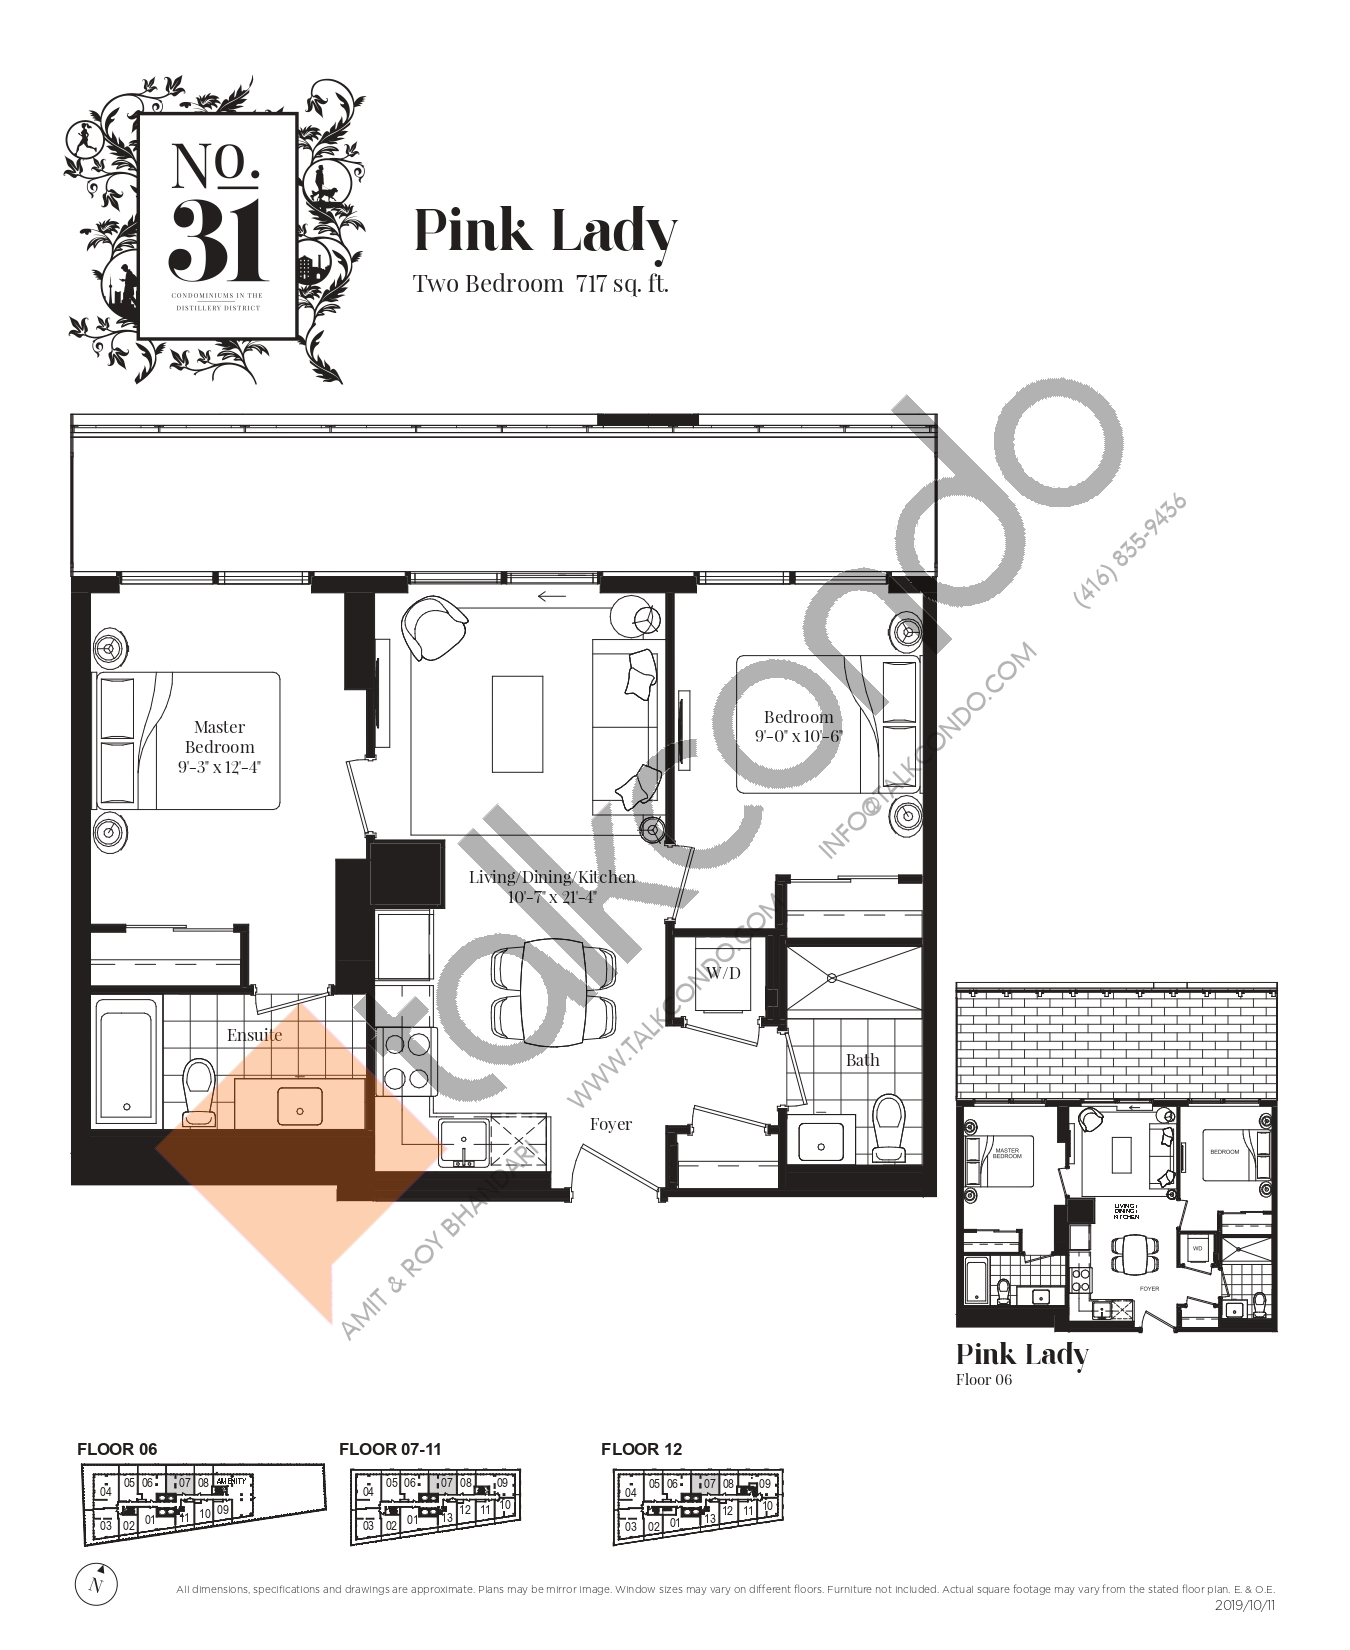 Pink Lady Floor Plan at No. 31 Condos - 717 sq.ft